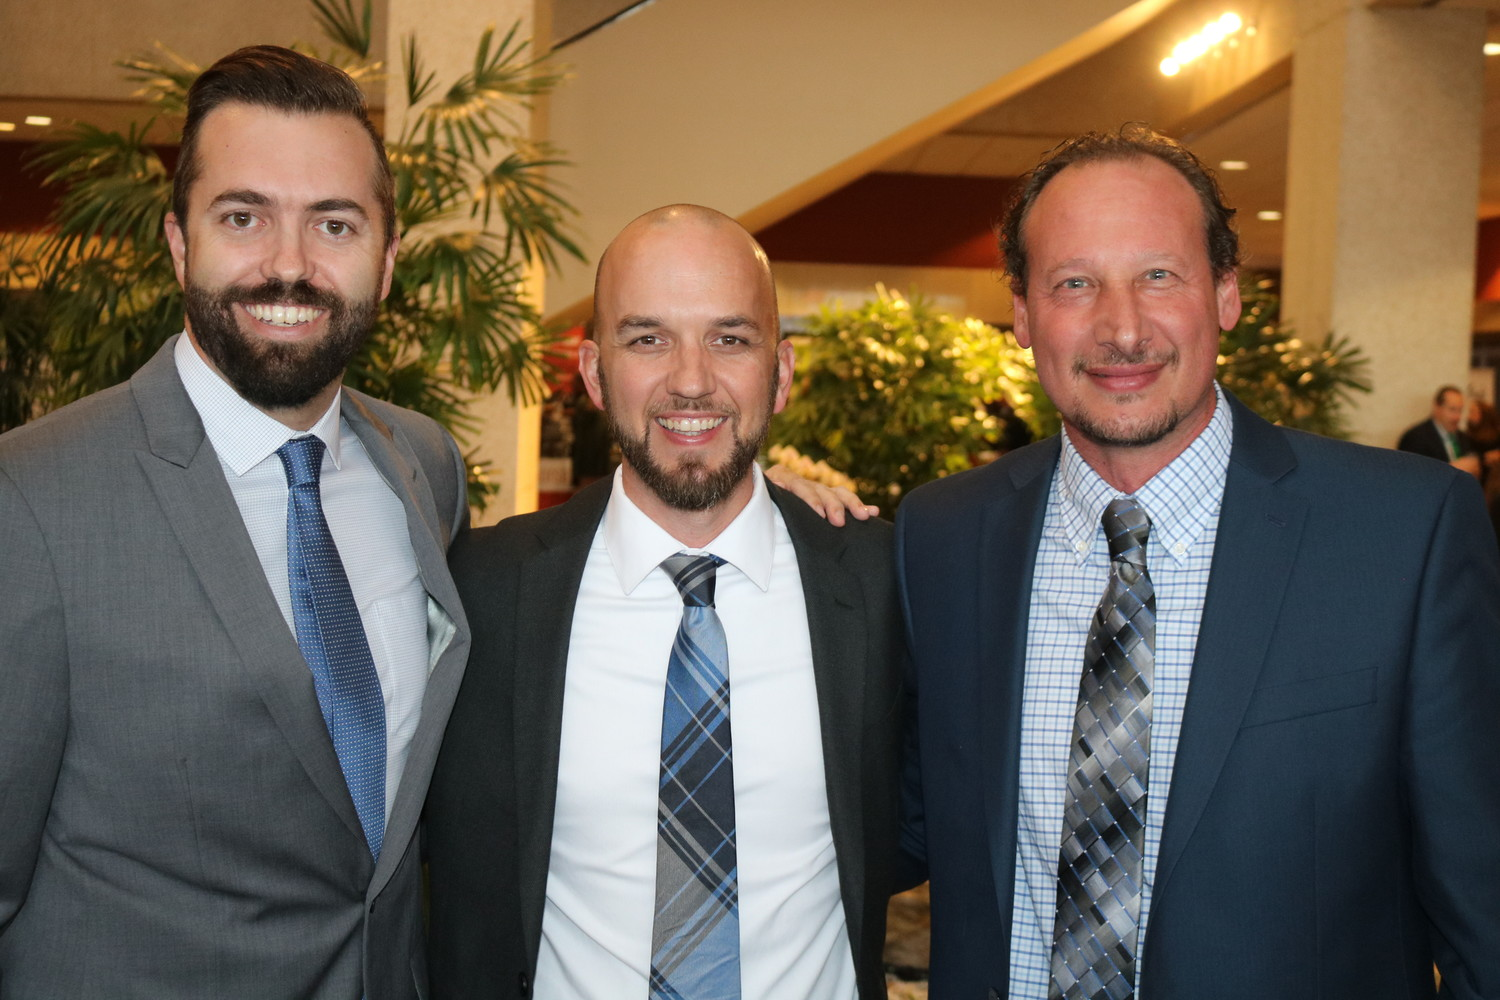 Chad Morrow, Ryan Norton and Luigi Chiaia of Southern Glazer's Wine & Spirits